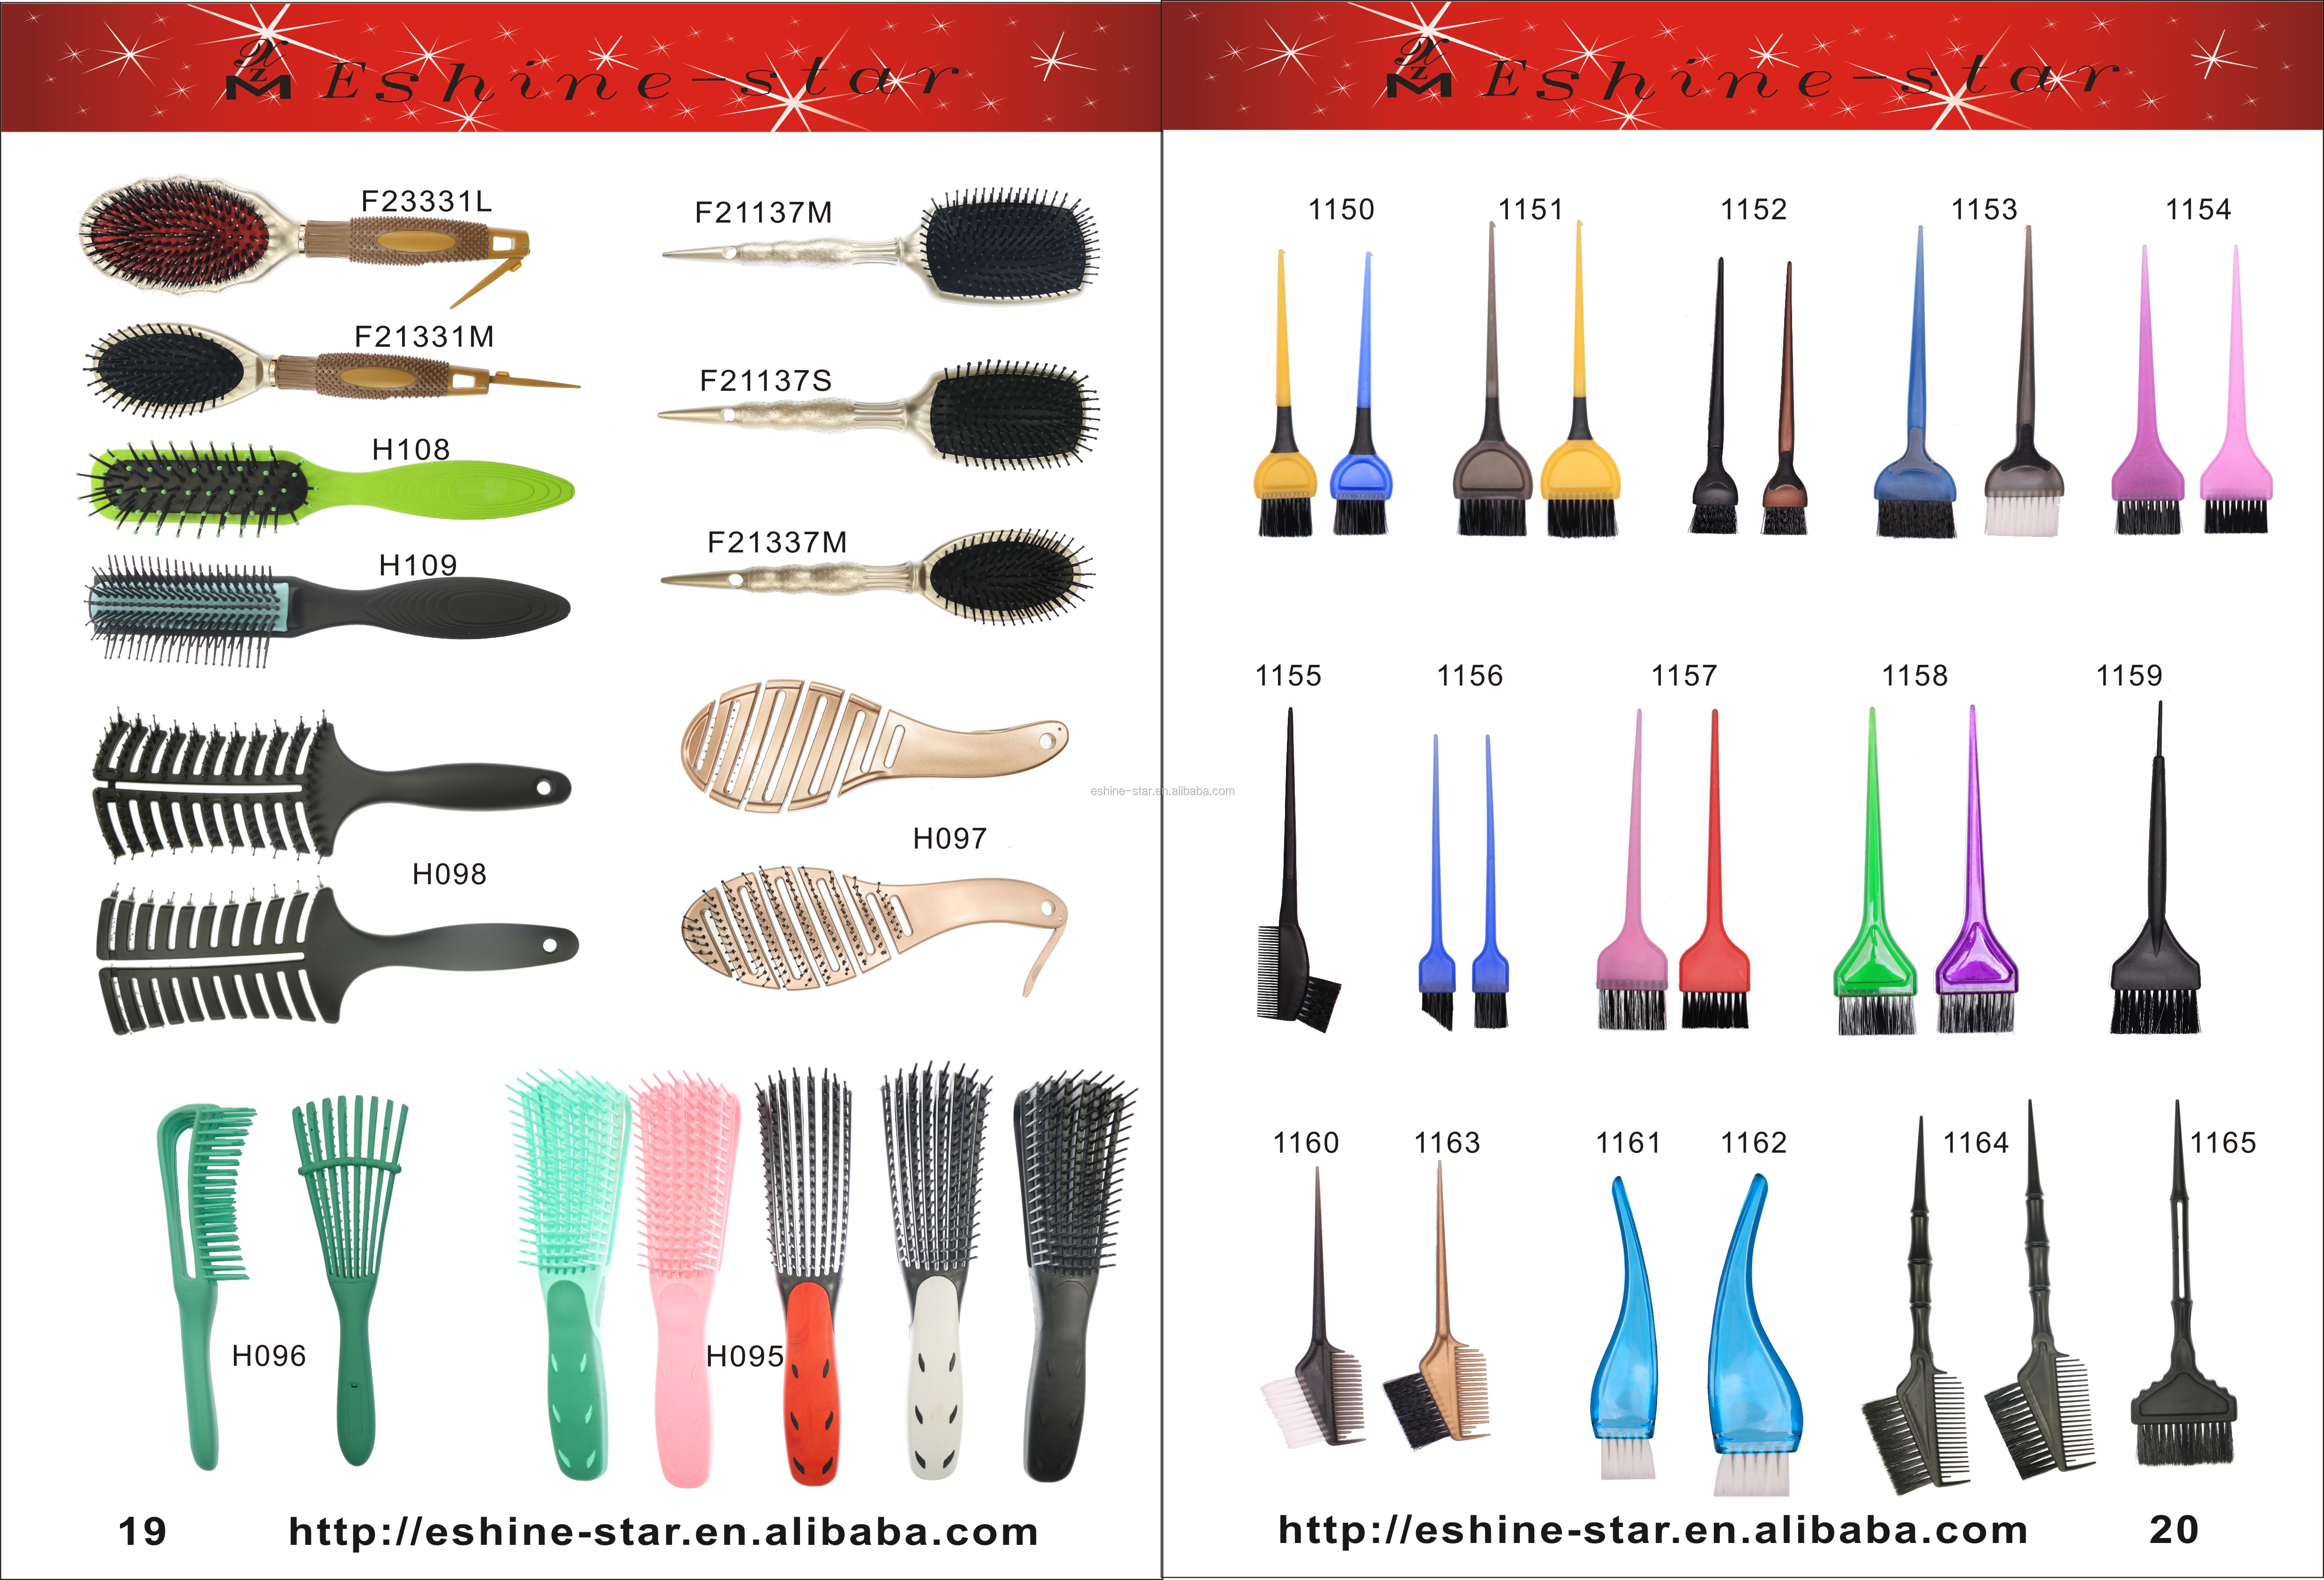 Customized logo hot selling brush professional hair dyeing color mix tool ,hair dyeing brush